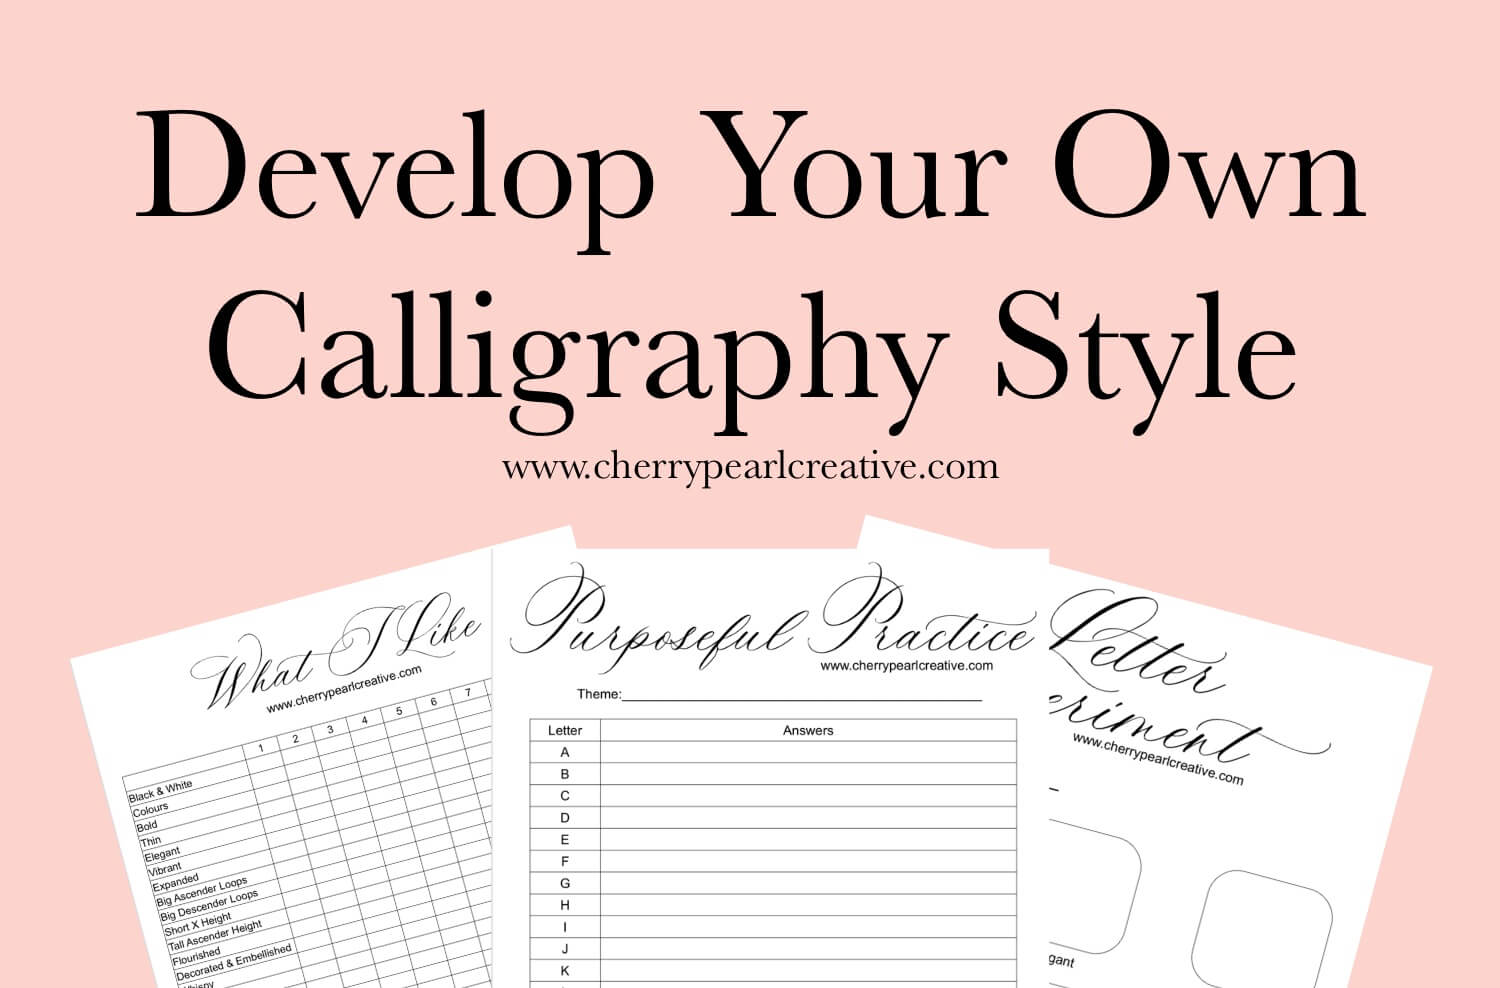 Develop Your Own Calligraphy Style